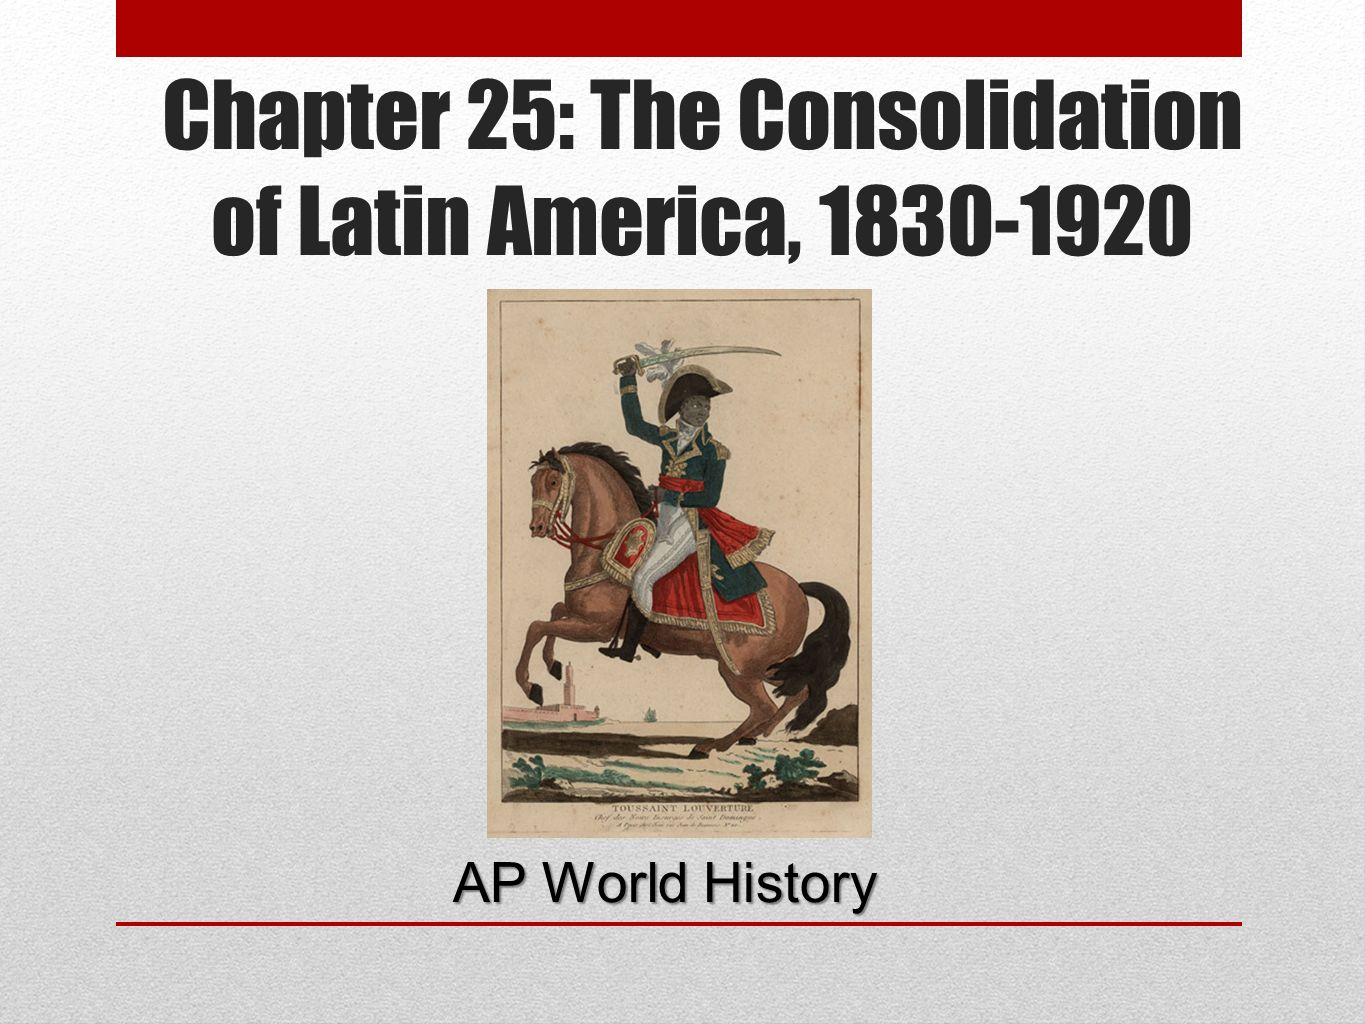 Chapter 25: The Consolidation of Latin America,